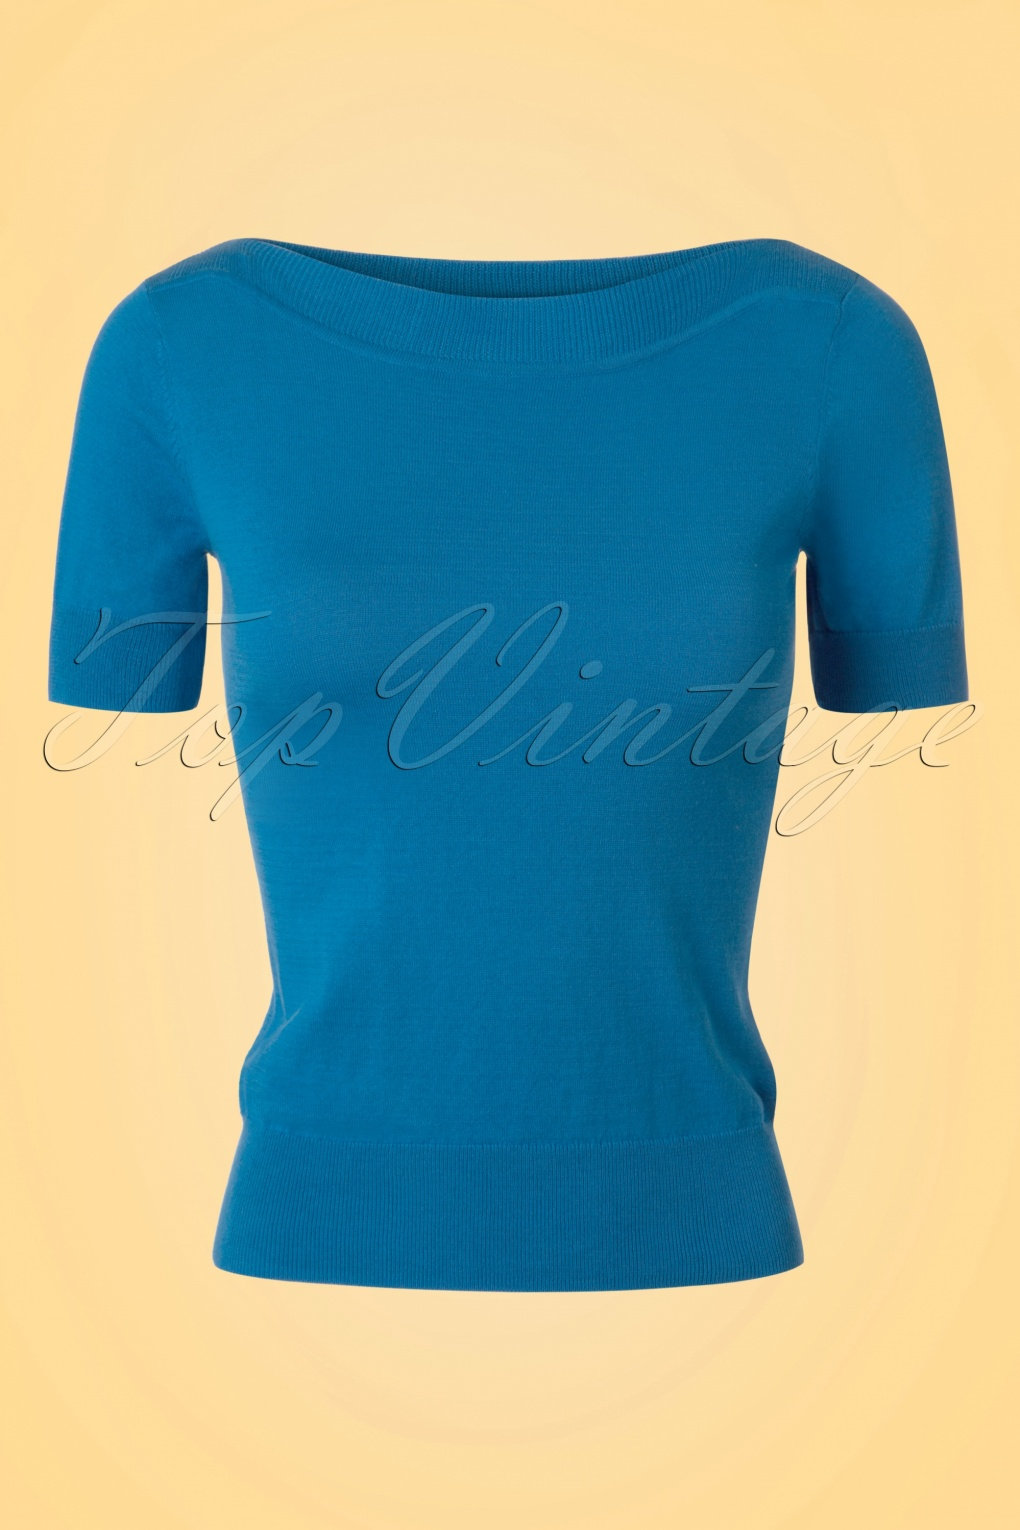 Shop 1960s Style Blouses, Shirts and Tops 50s Audrey Cottonclub Top in Blue Moon £52.08 AT vintagedancer.com